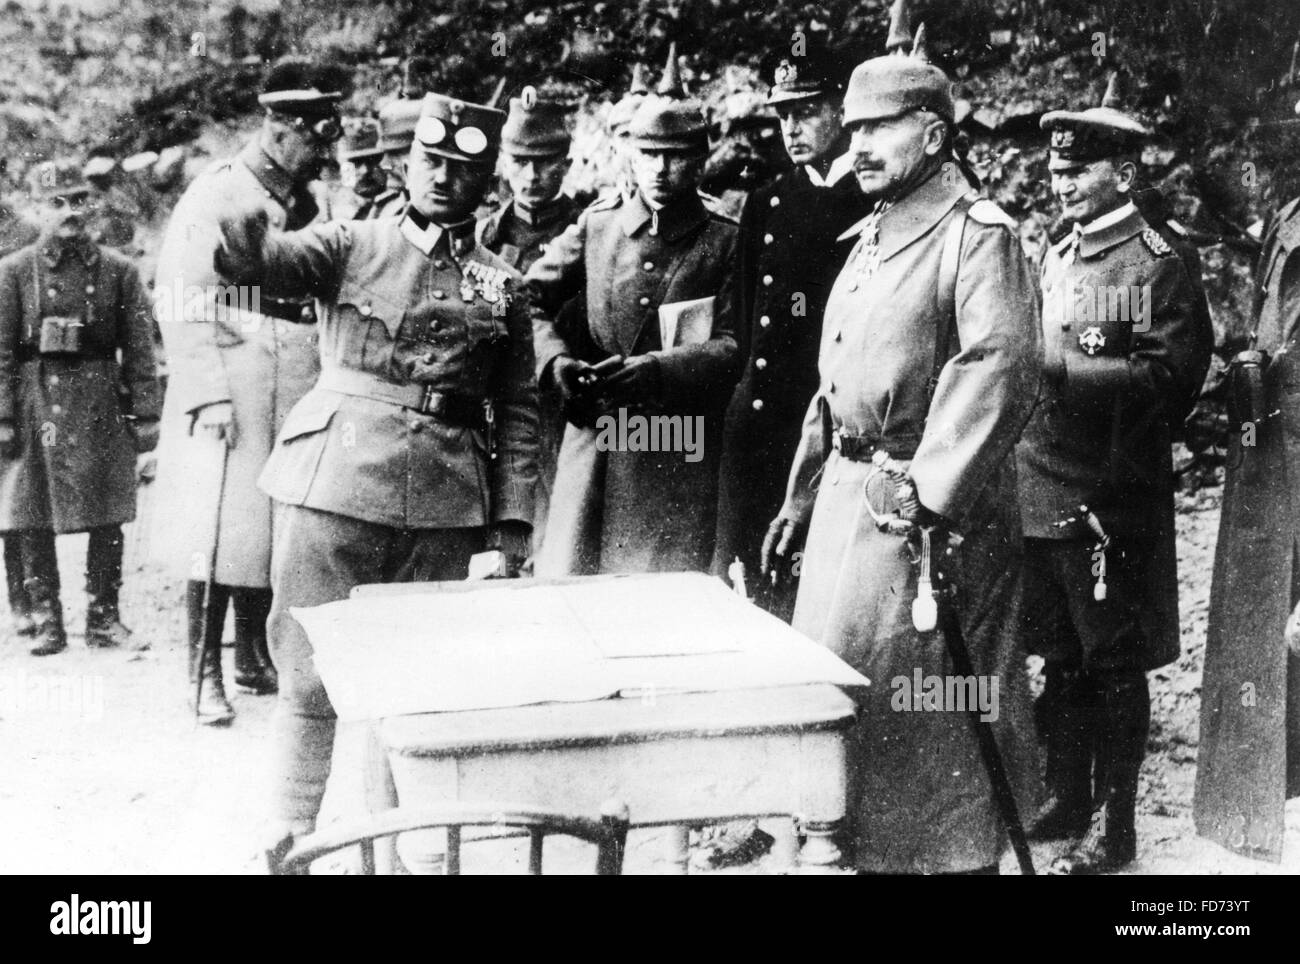 Emperor Wilhelm II is told the position of the frontlines, 1917 - Stock Image